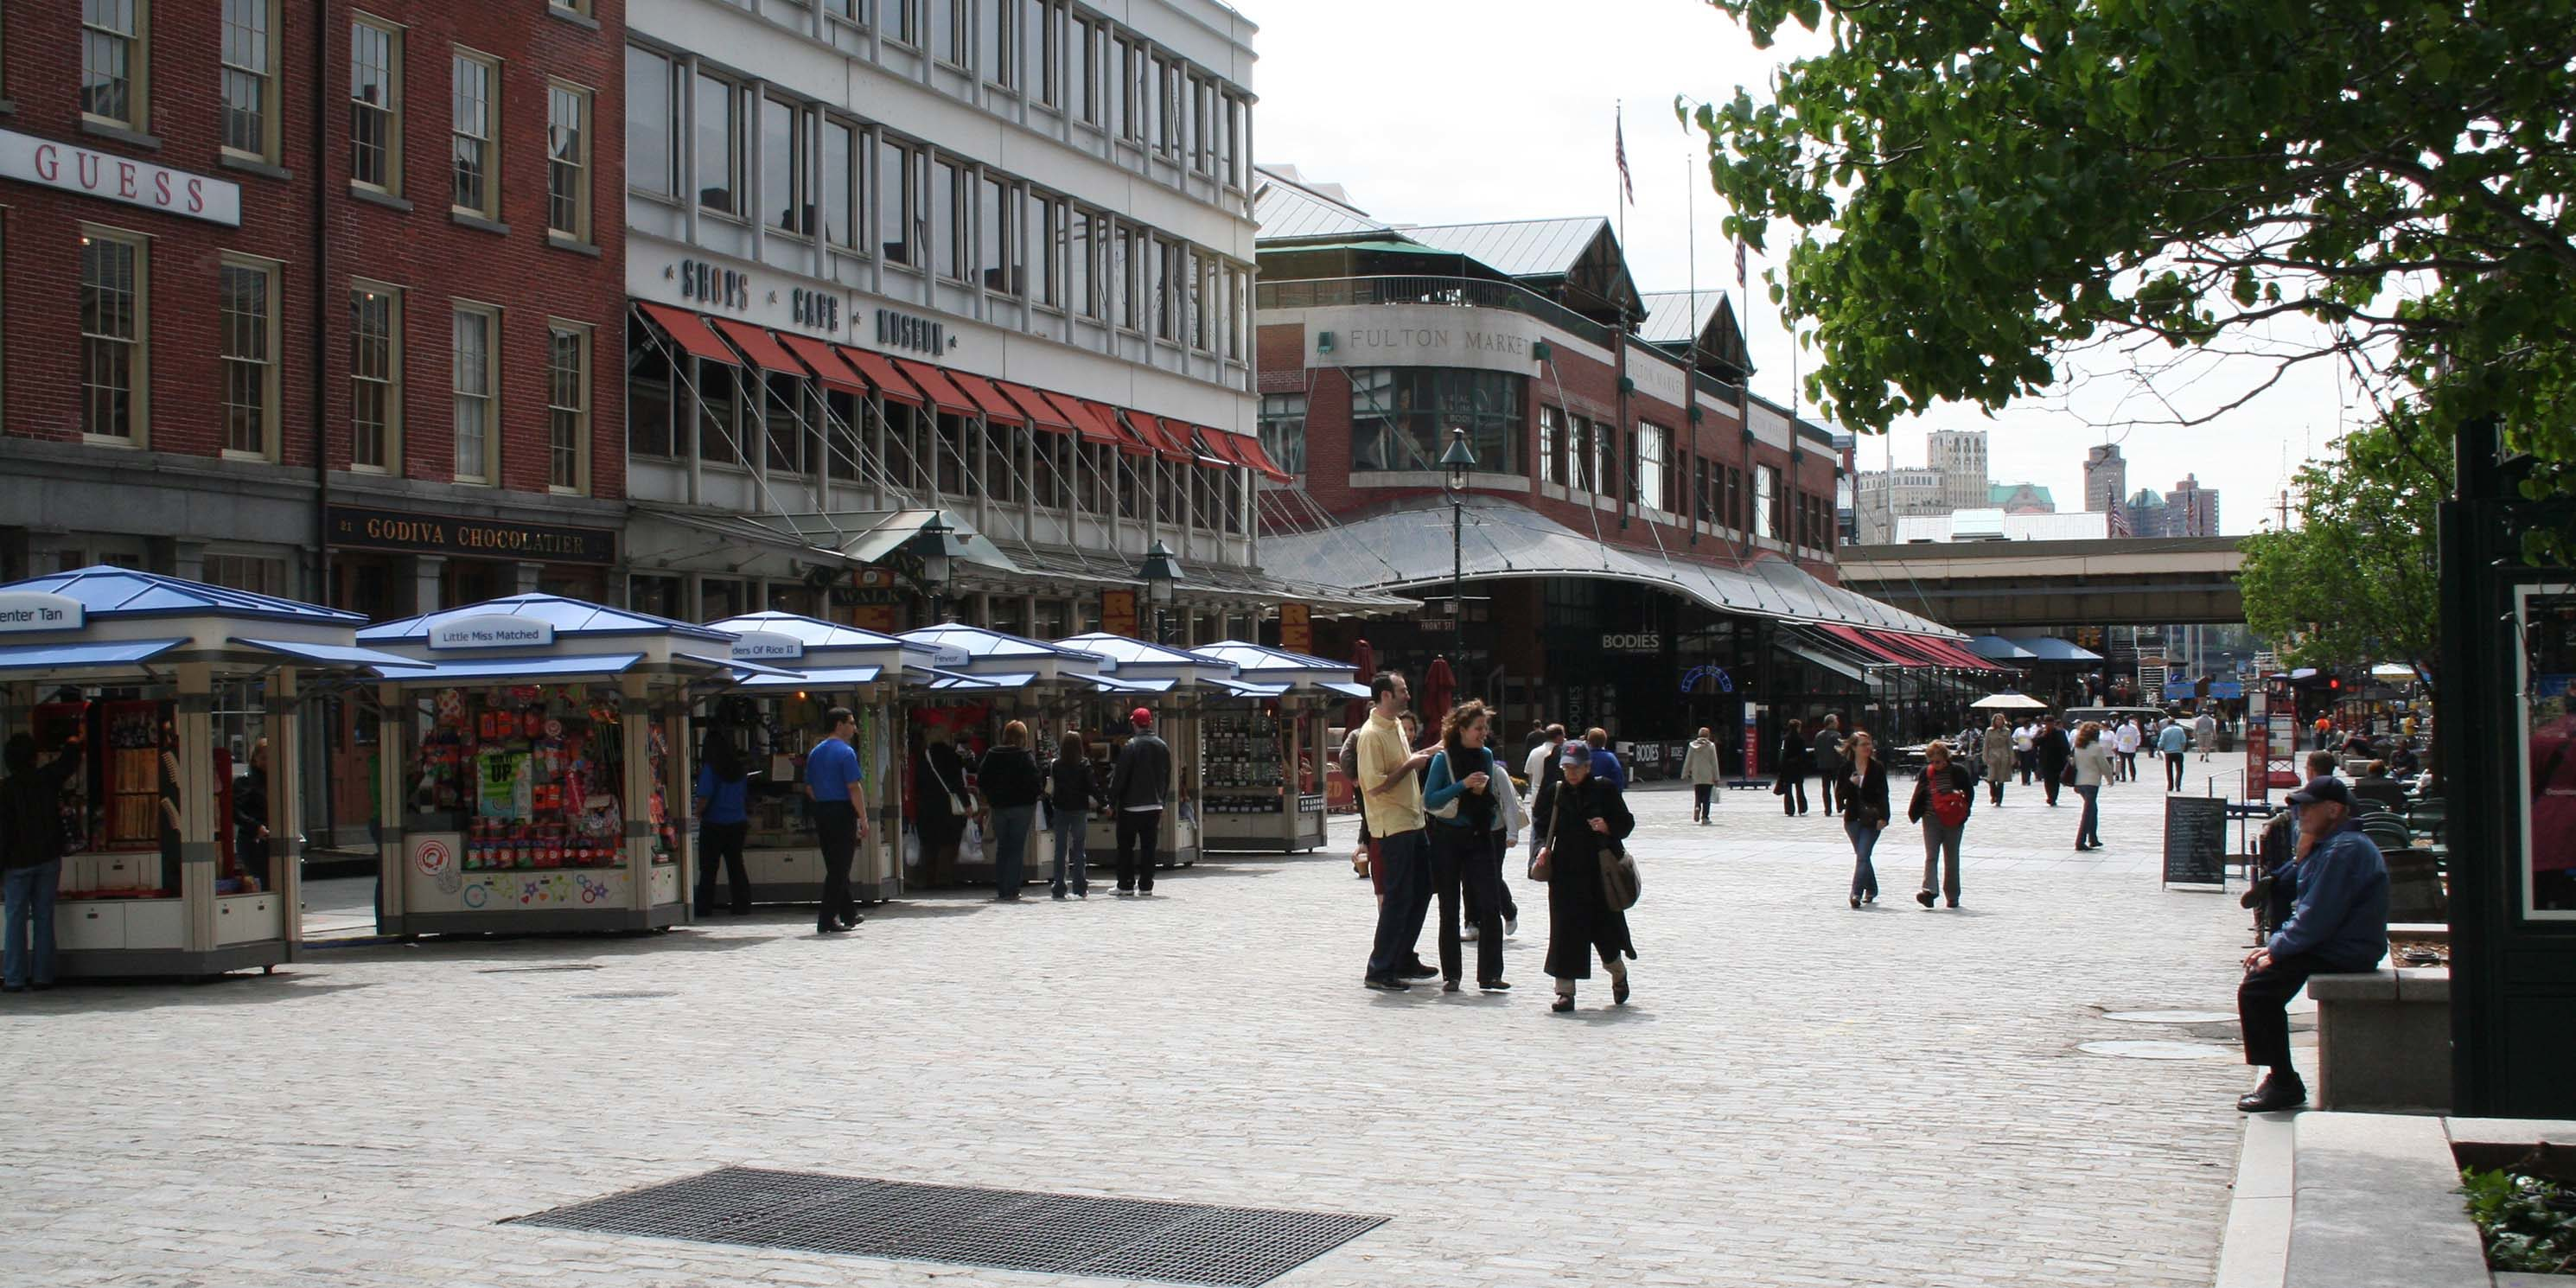 a cobblestone street with shops and kiosks at South Street Seaport